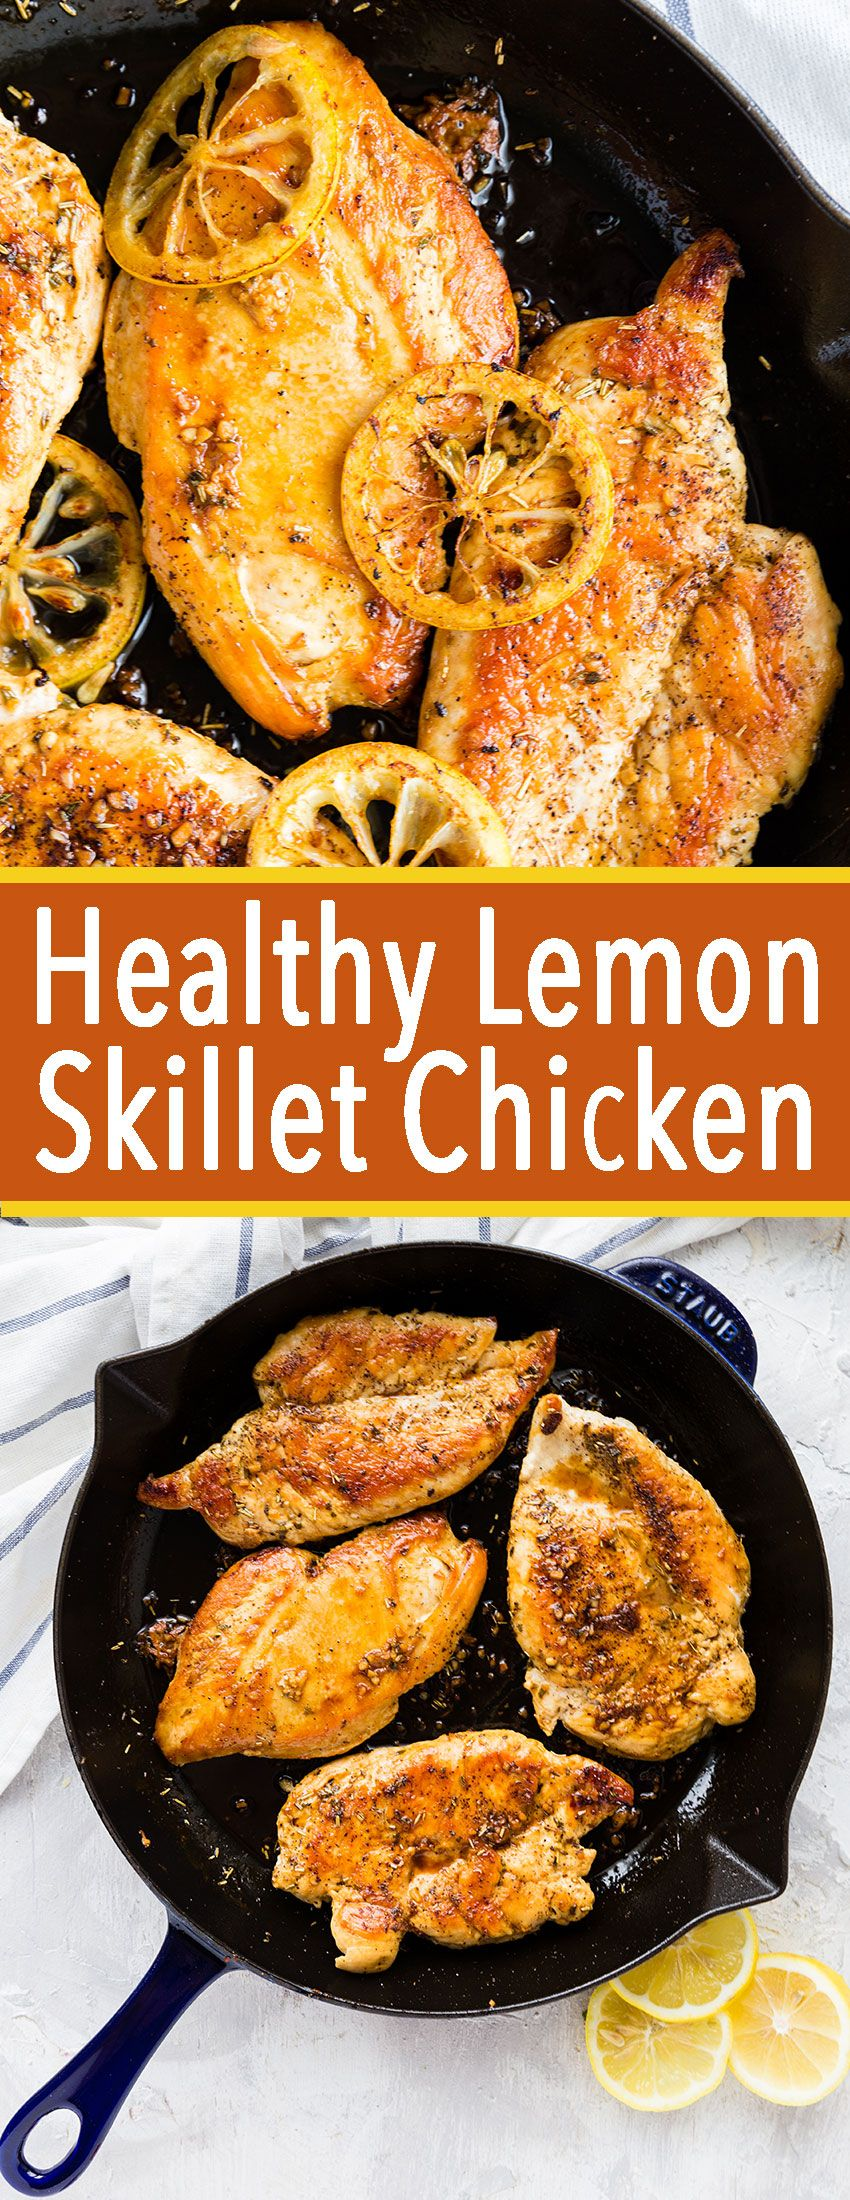 Healthy Lemon Skillet Chicken images